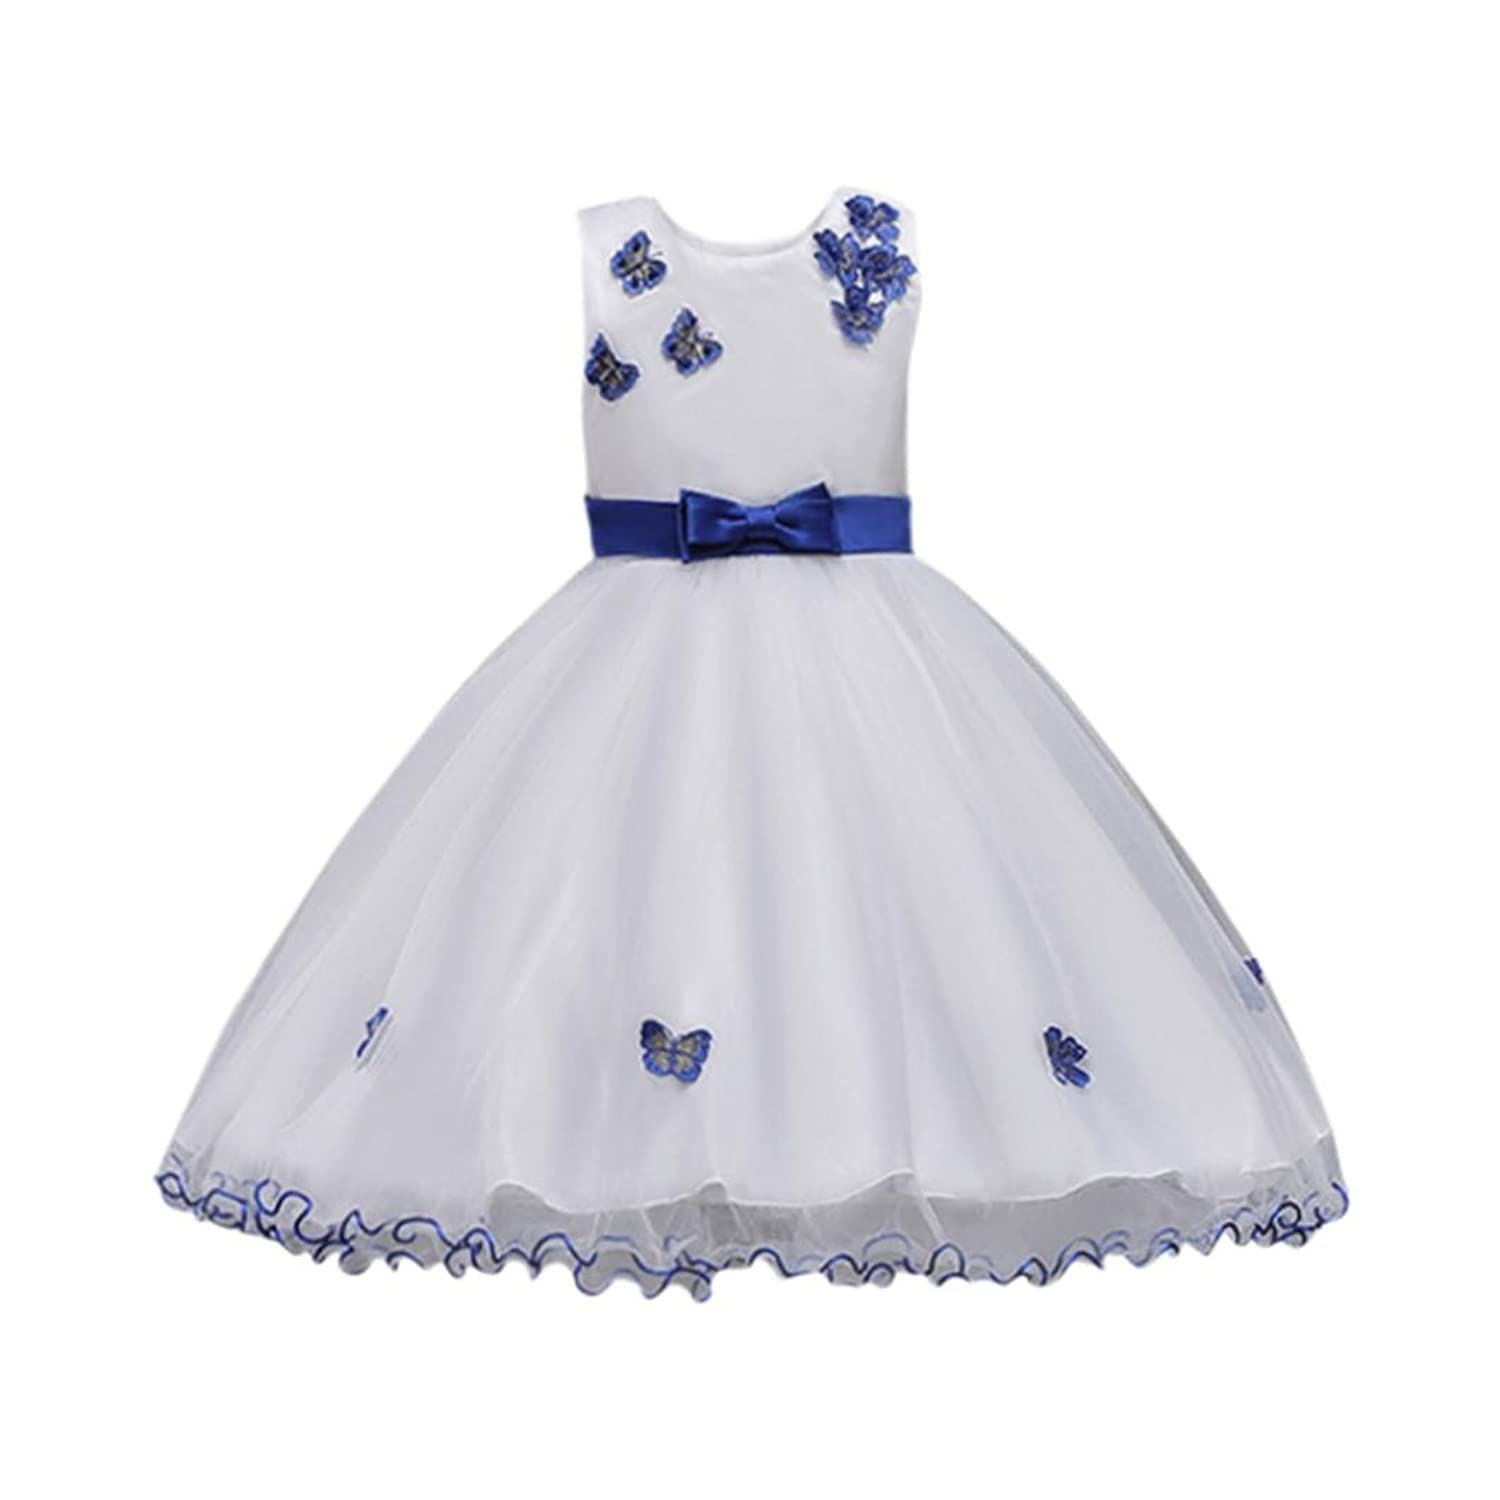 Fuibo Fuibo Mädchen Partykleid, Bow Baby Girl Prinzessin ...